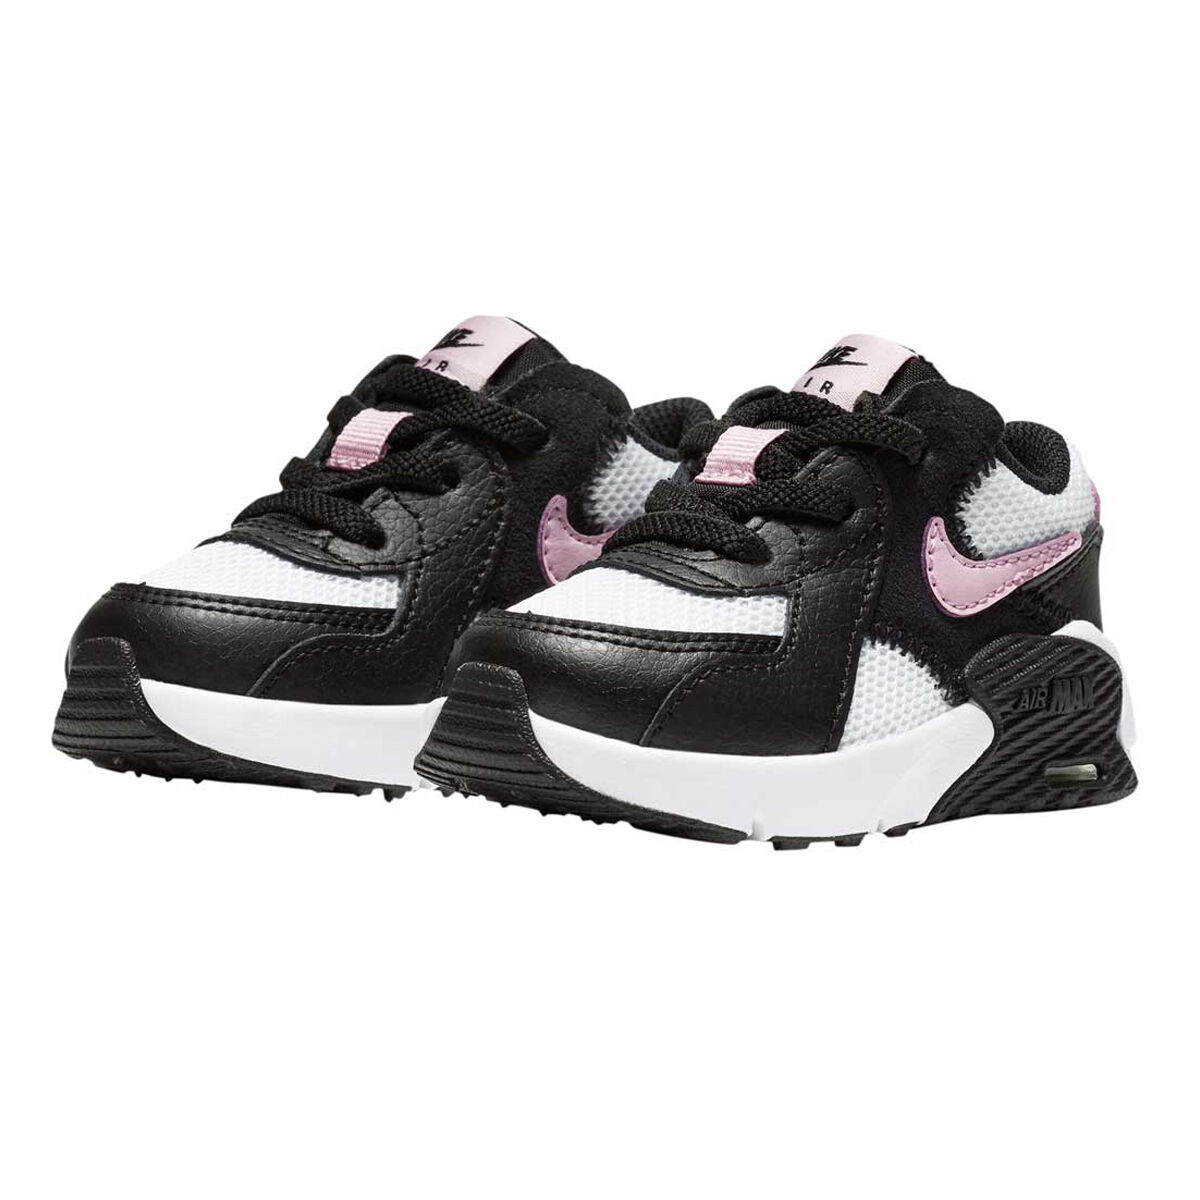 Nike Air Max Excee Toddler Shoes